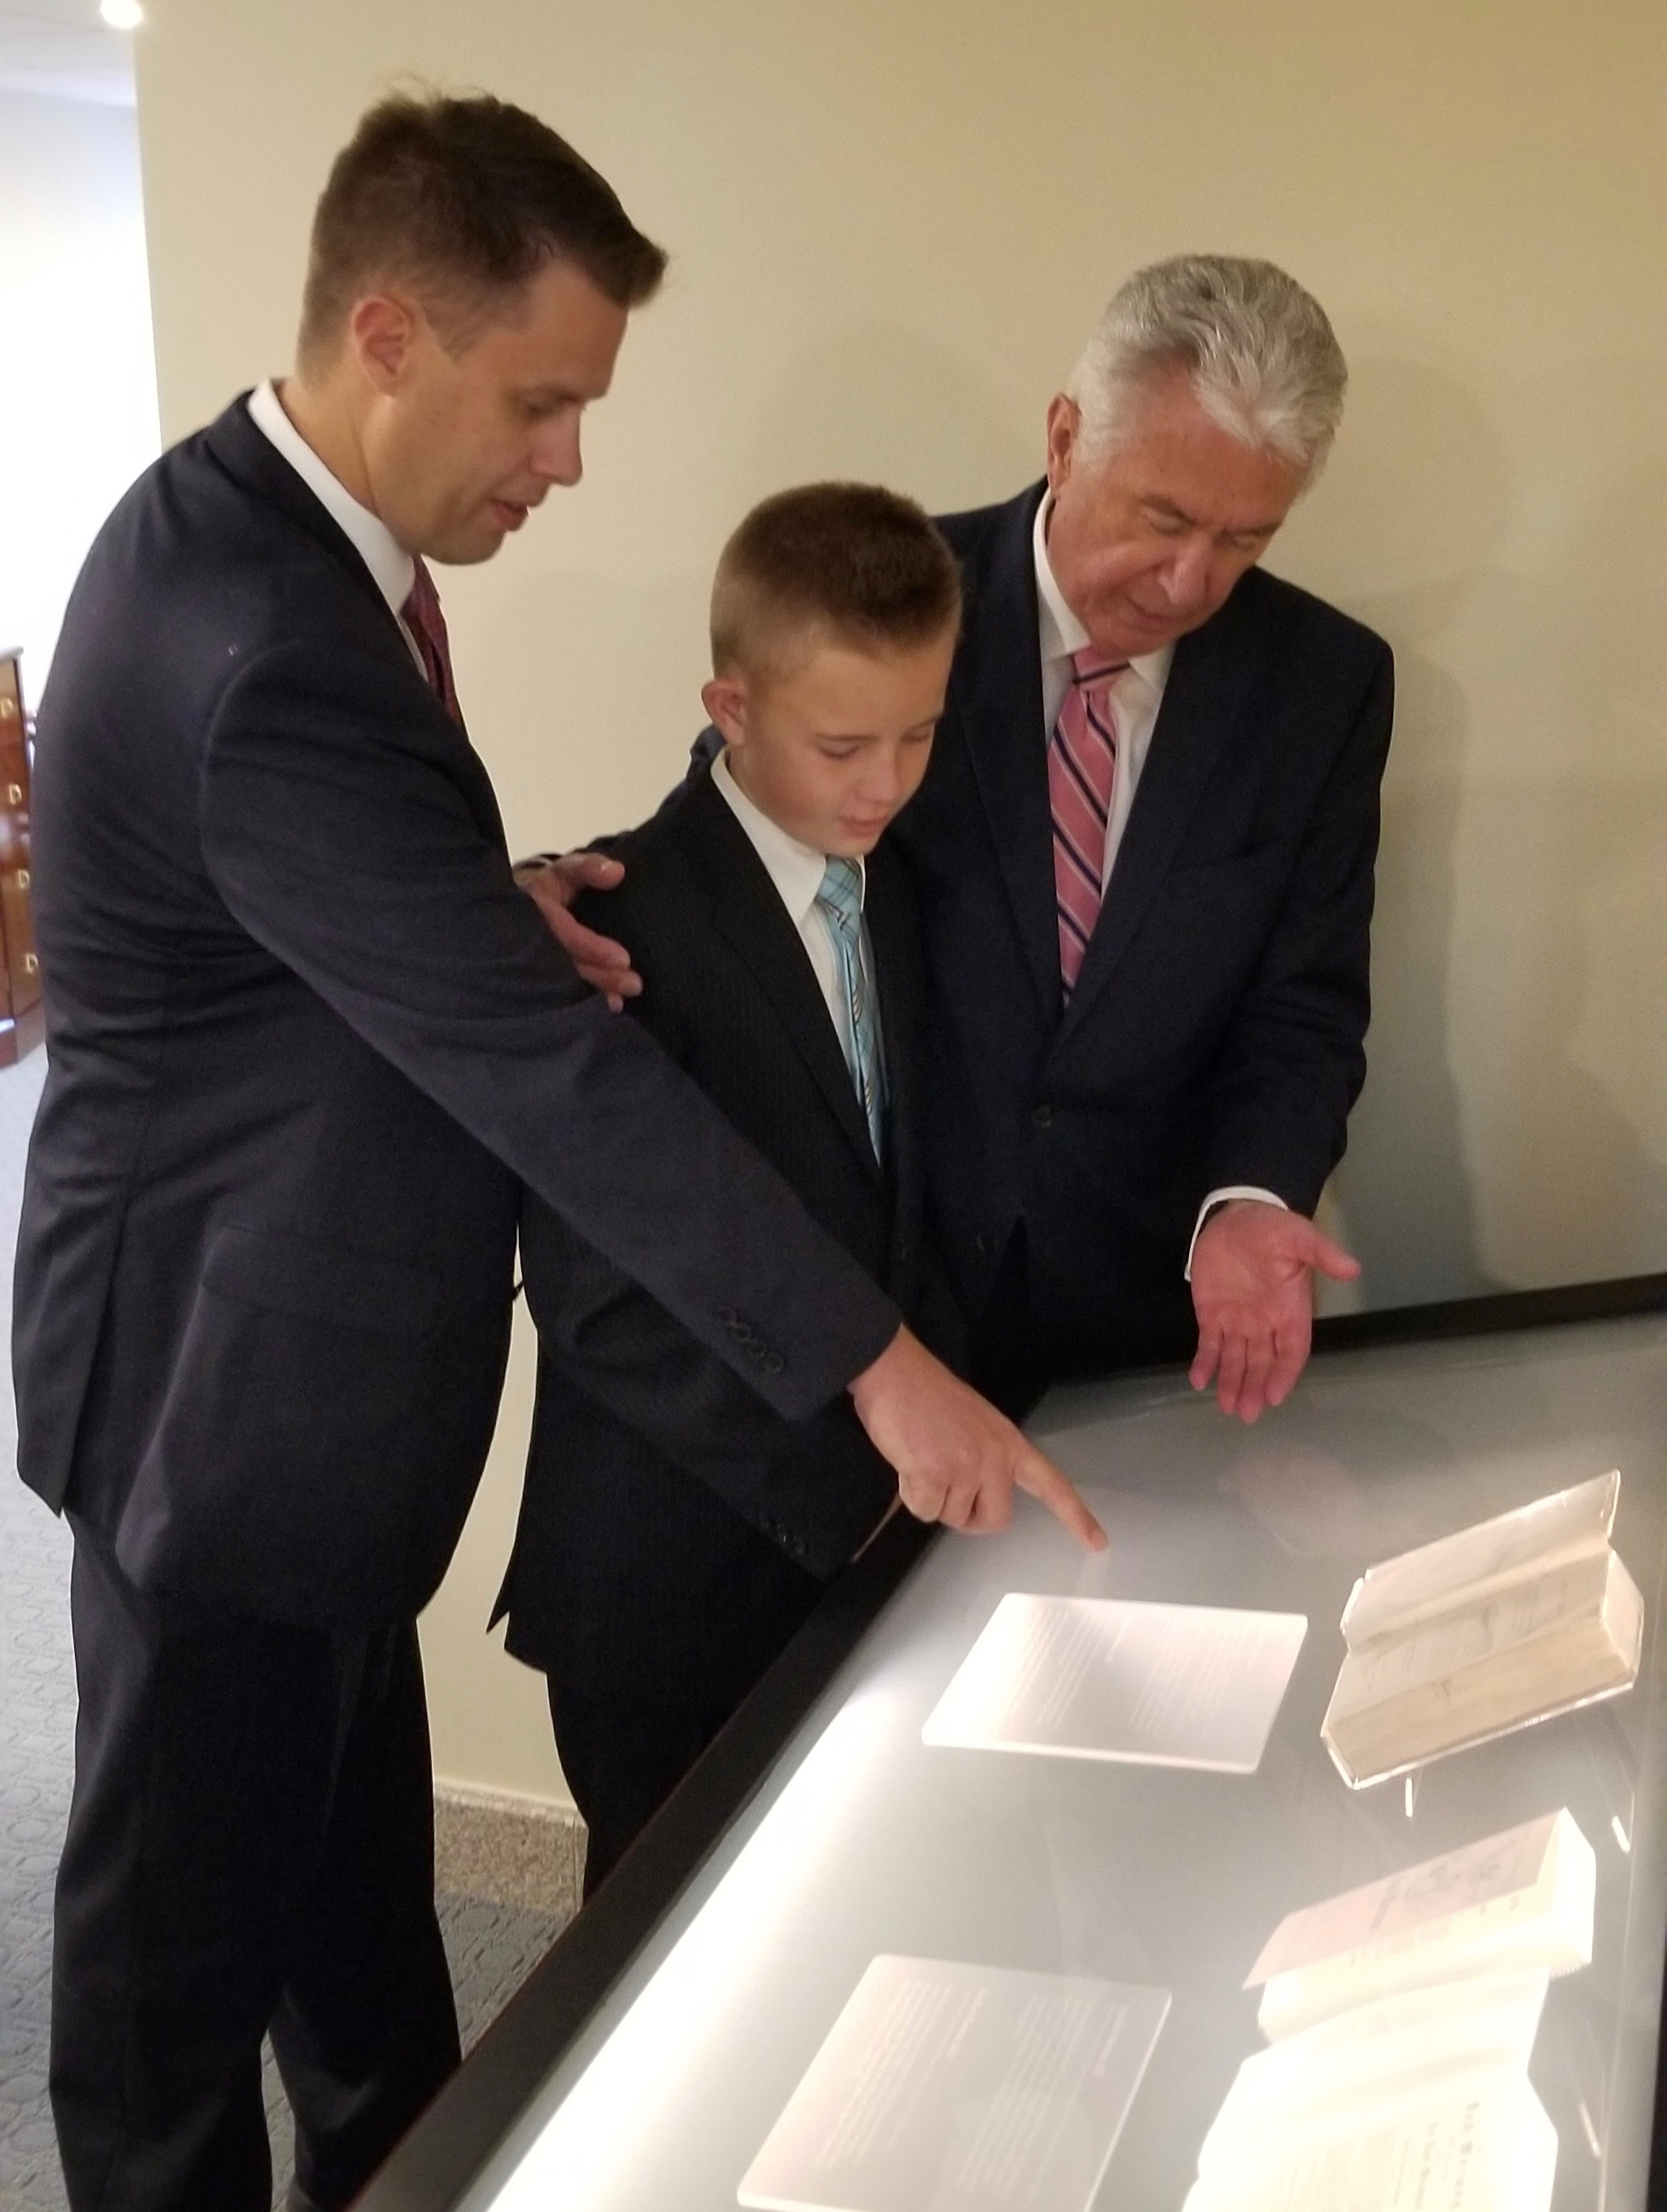 James Burton, left, and his son Gavin look with Elder Dieter F. Uchtdorf at the first-edition Book of Mormon donated by the family of the late Elder Theodore M. Burton, who had presided over the West German Mission and had encouraged a young Dieter Uchtdorf to remain and raise a family in Germany rather than relocated to the United States.